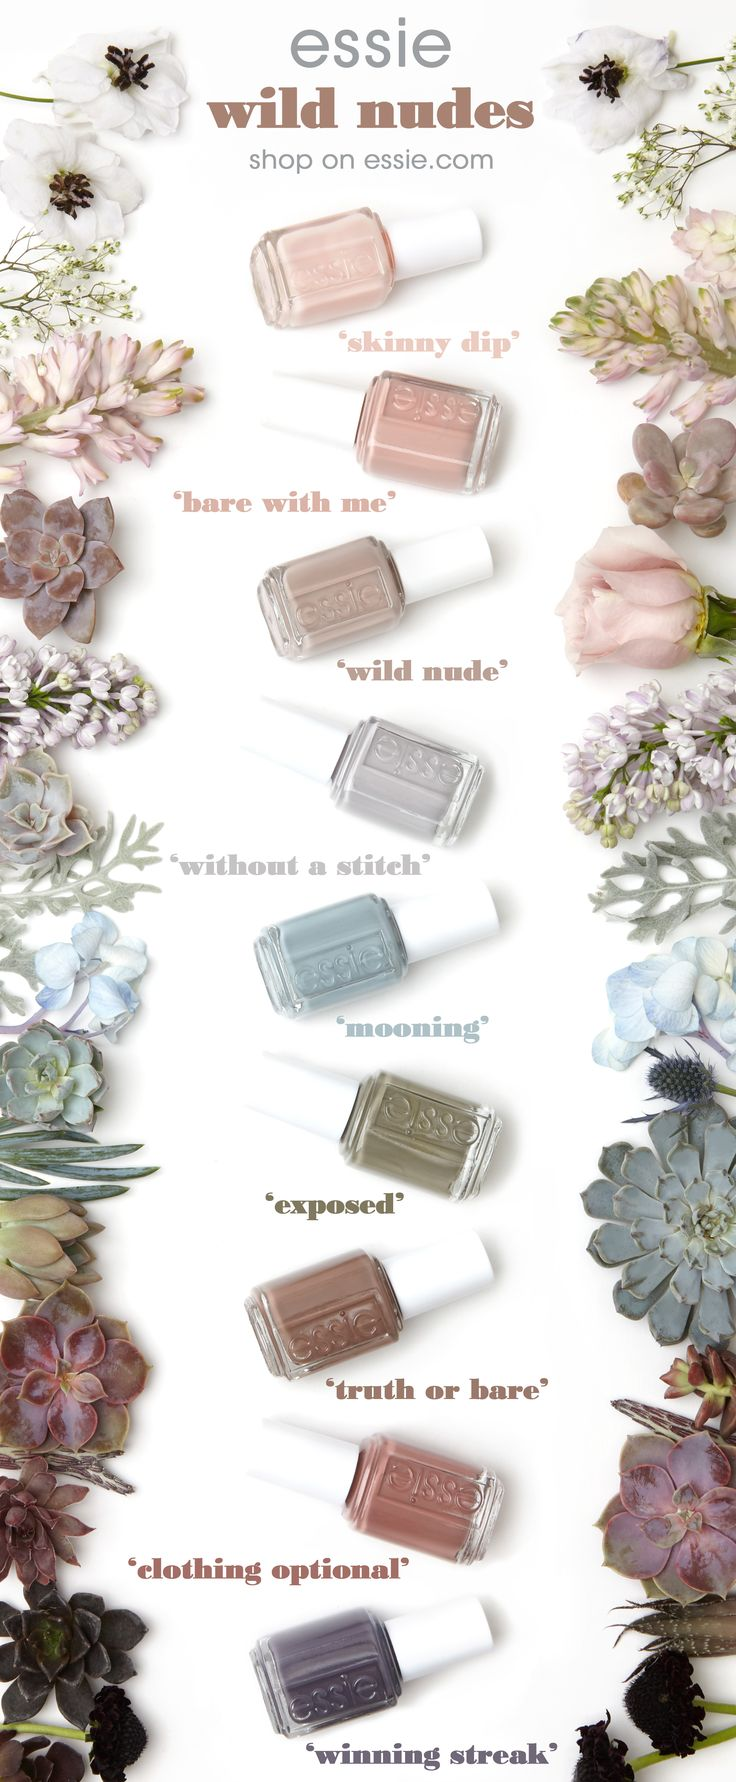 from a light tan with a wash of white to a shadowy blue, these shades are meant to be exposed. strip down and bare it all in the wildest of nude nail colors for spring. untamed, fierce and sexy, these disarming shades will totally charm the pants off one and all. get ready to expose your nails in our latest collection of essie wild nudes polish — they look amazing on all skintones.